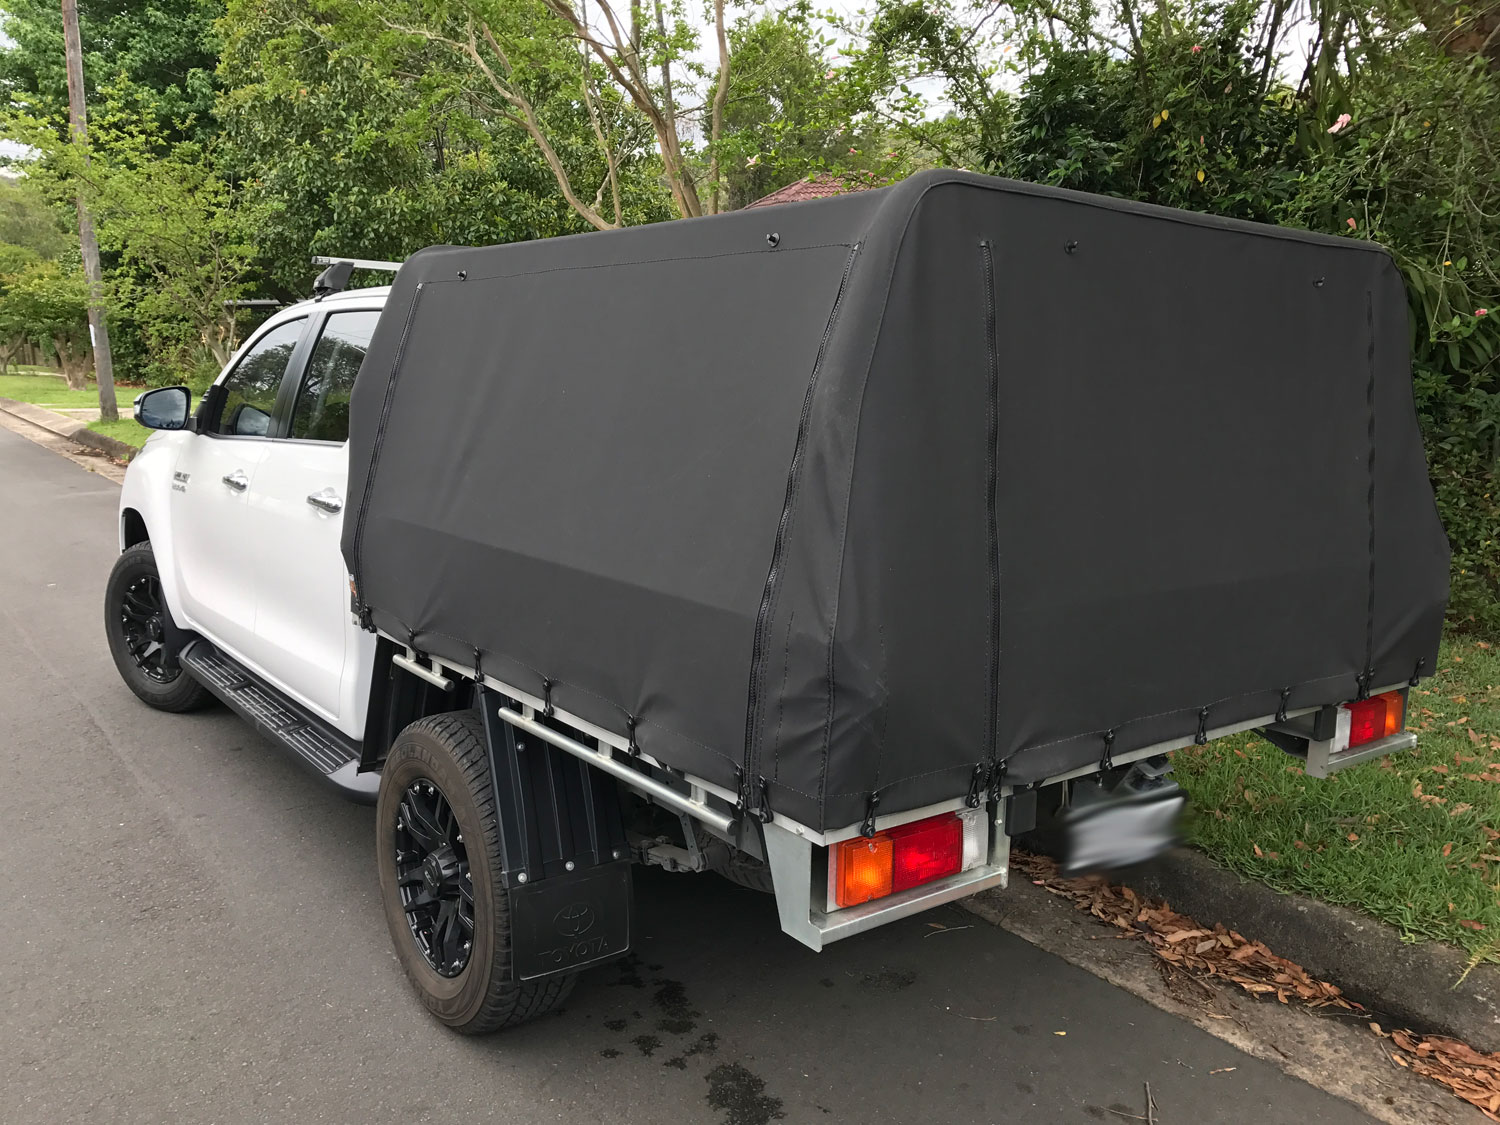 2016 Hilux with Genuine Tray with Toyota rear bar Canvas ute canopies cover & Canvas Ute Canopies for Trays with existing rear bar:Wallaby Track ...